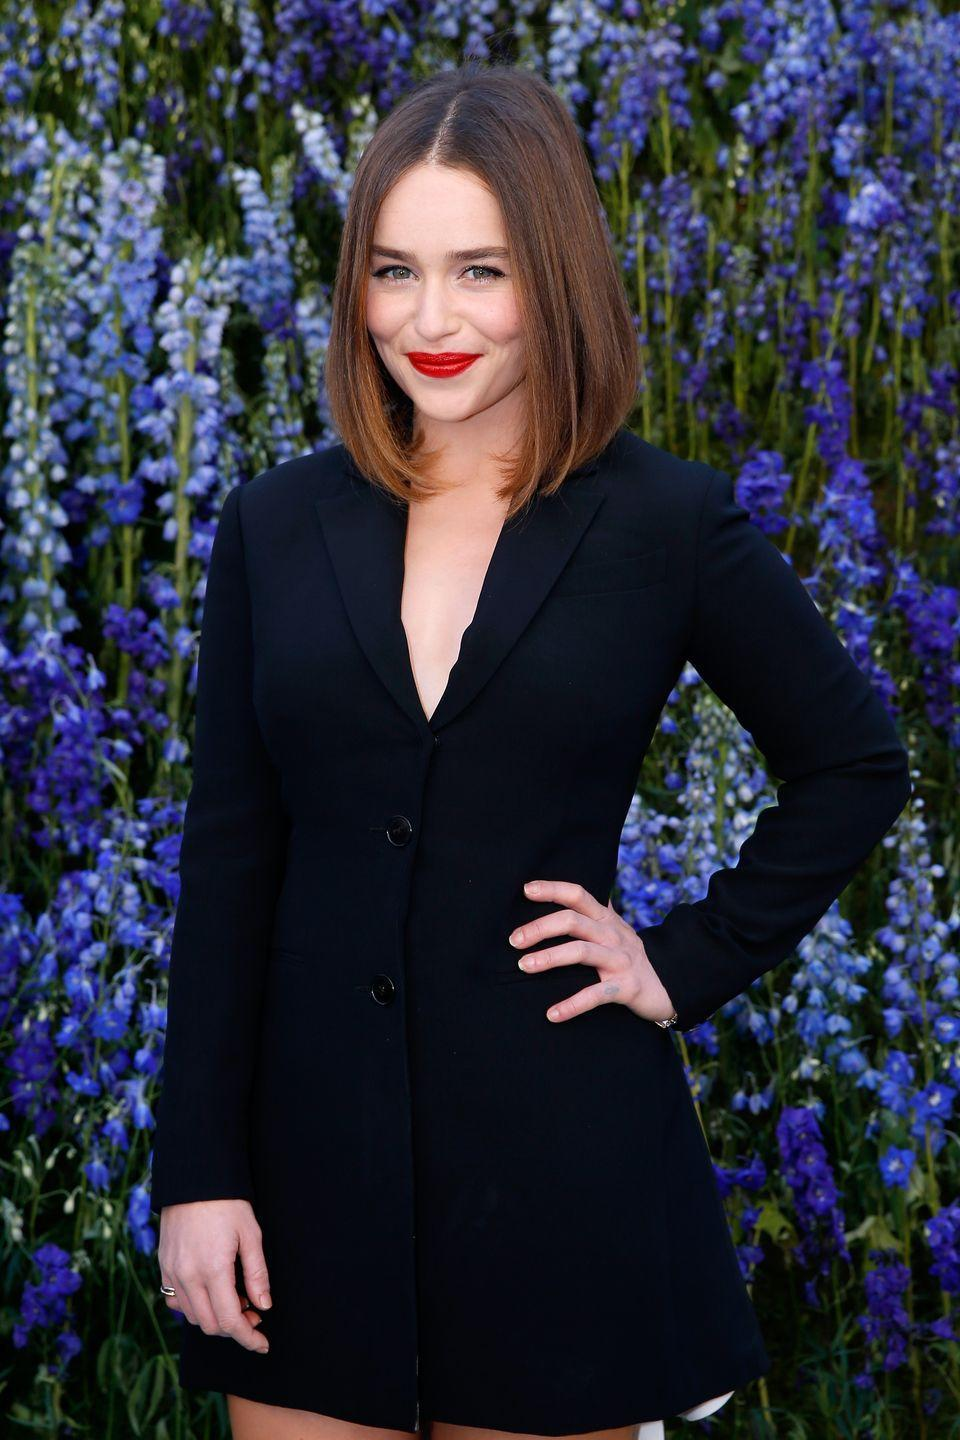 <p>When she isn't walking through fire or plotting her claim to the Iron Throne on <em>Game of Thrones</em>, Emilia Clarke wears her natural brunette hair color. </p>